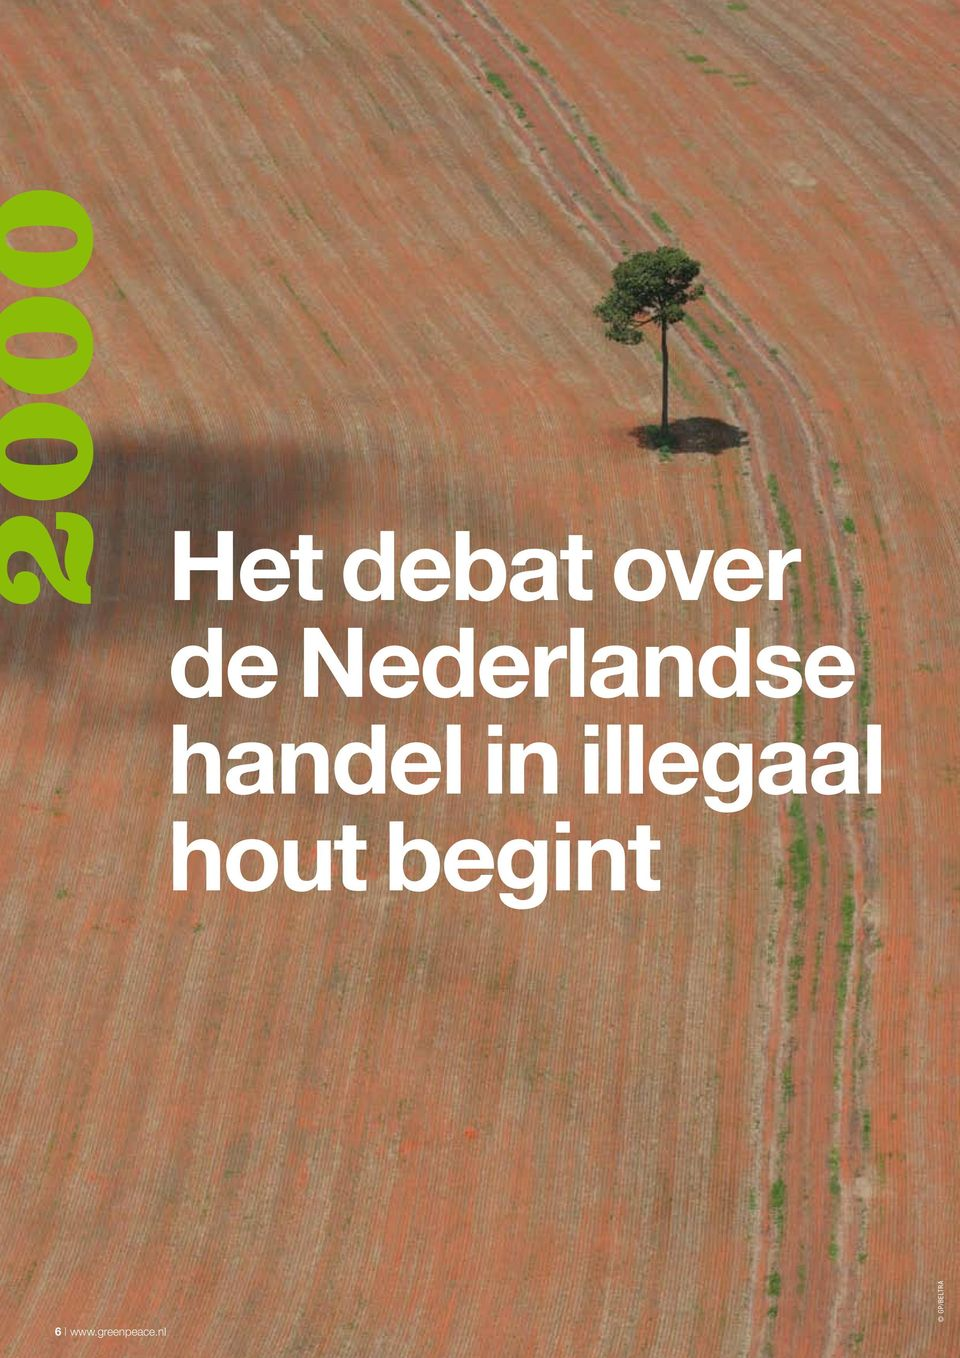 illegaal hout begint 6